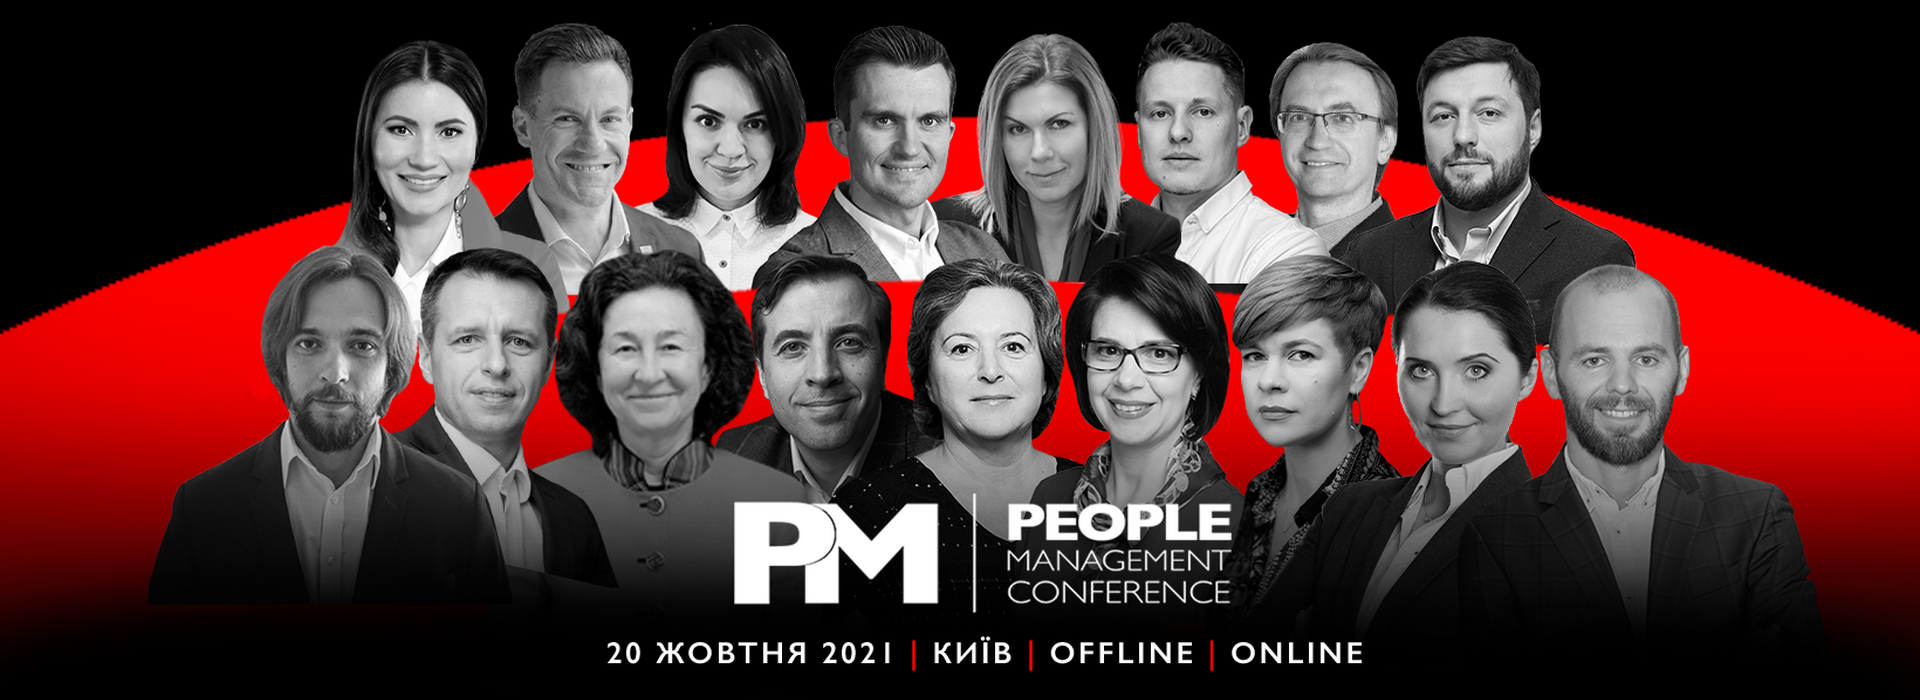 People Management Conference